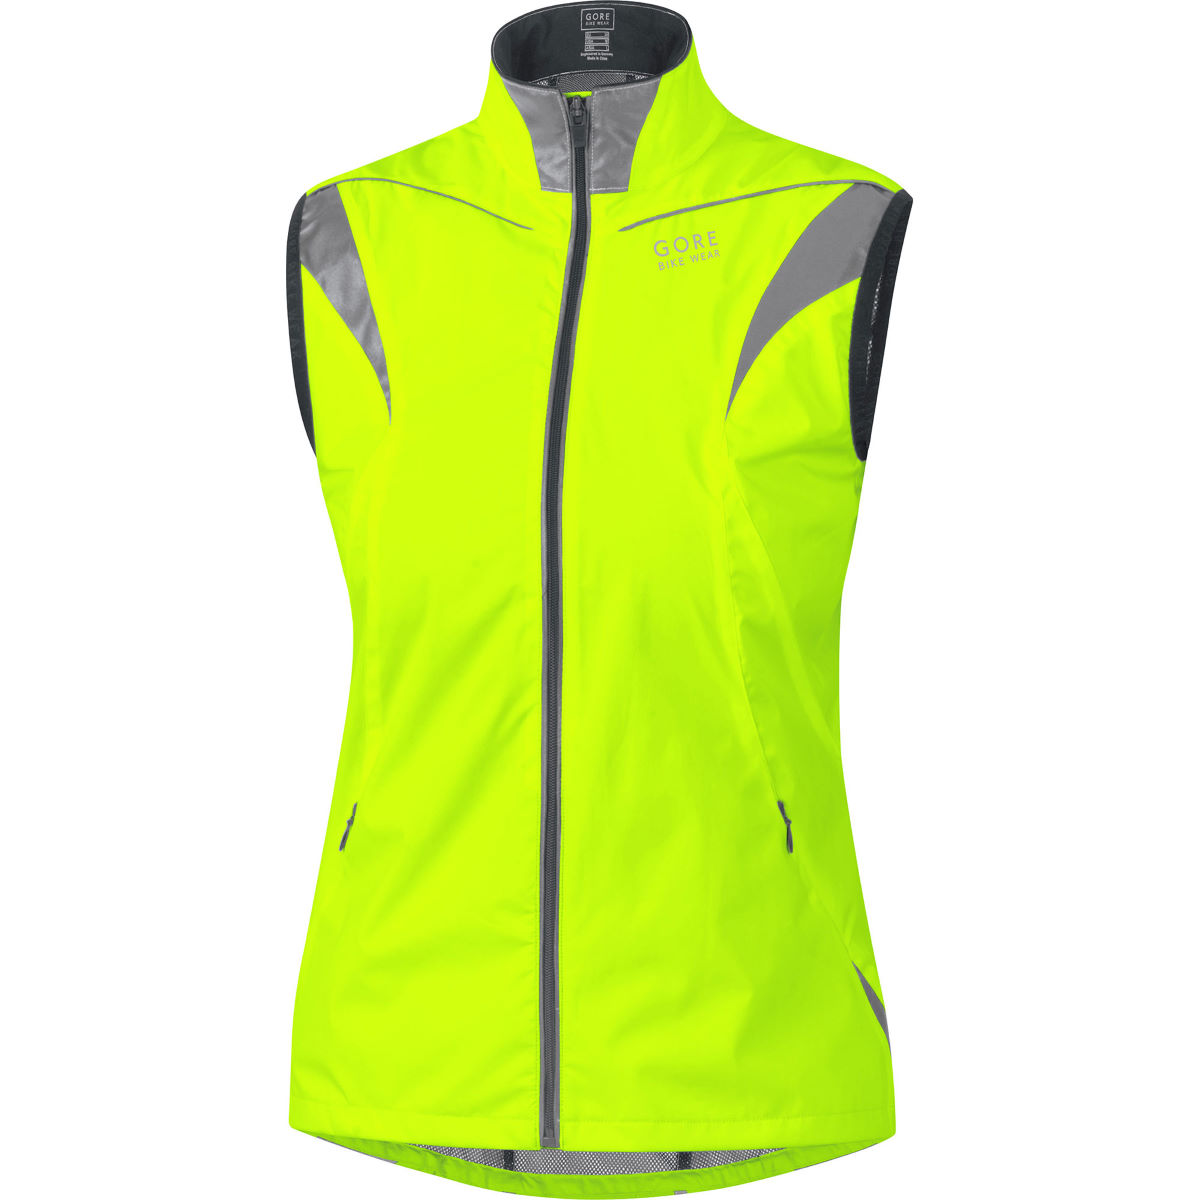 Gore bike wear women s visibility active shell vest cycling gilets neon yellow aw15